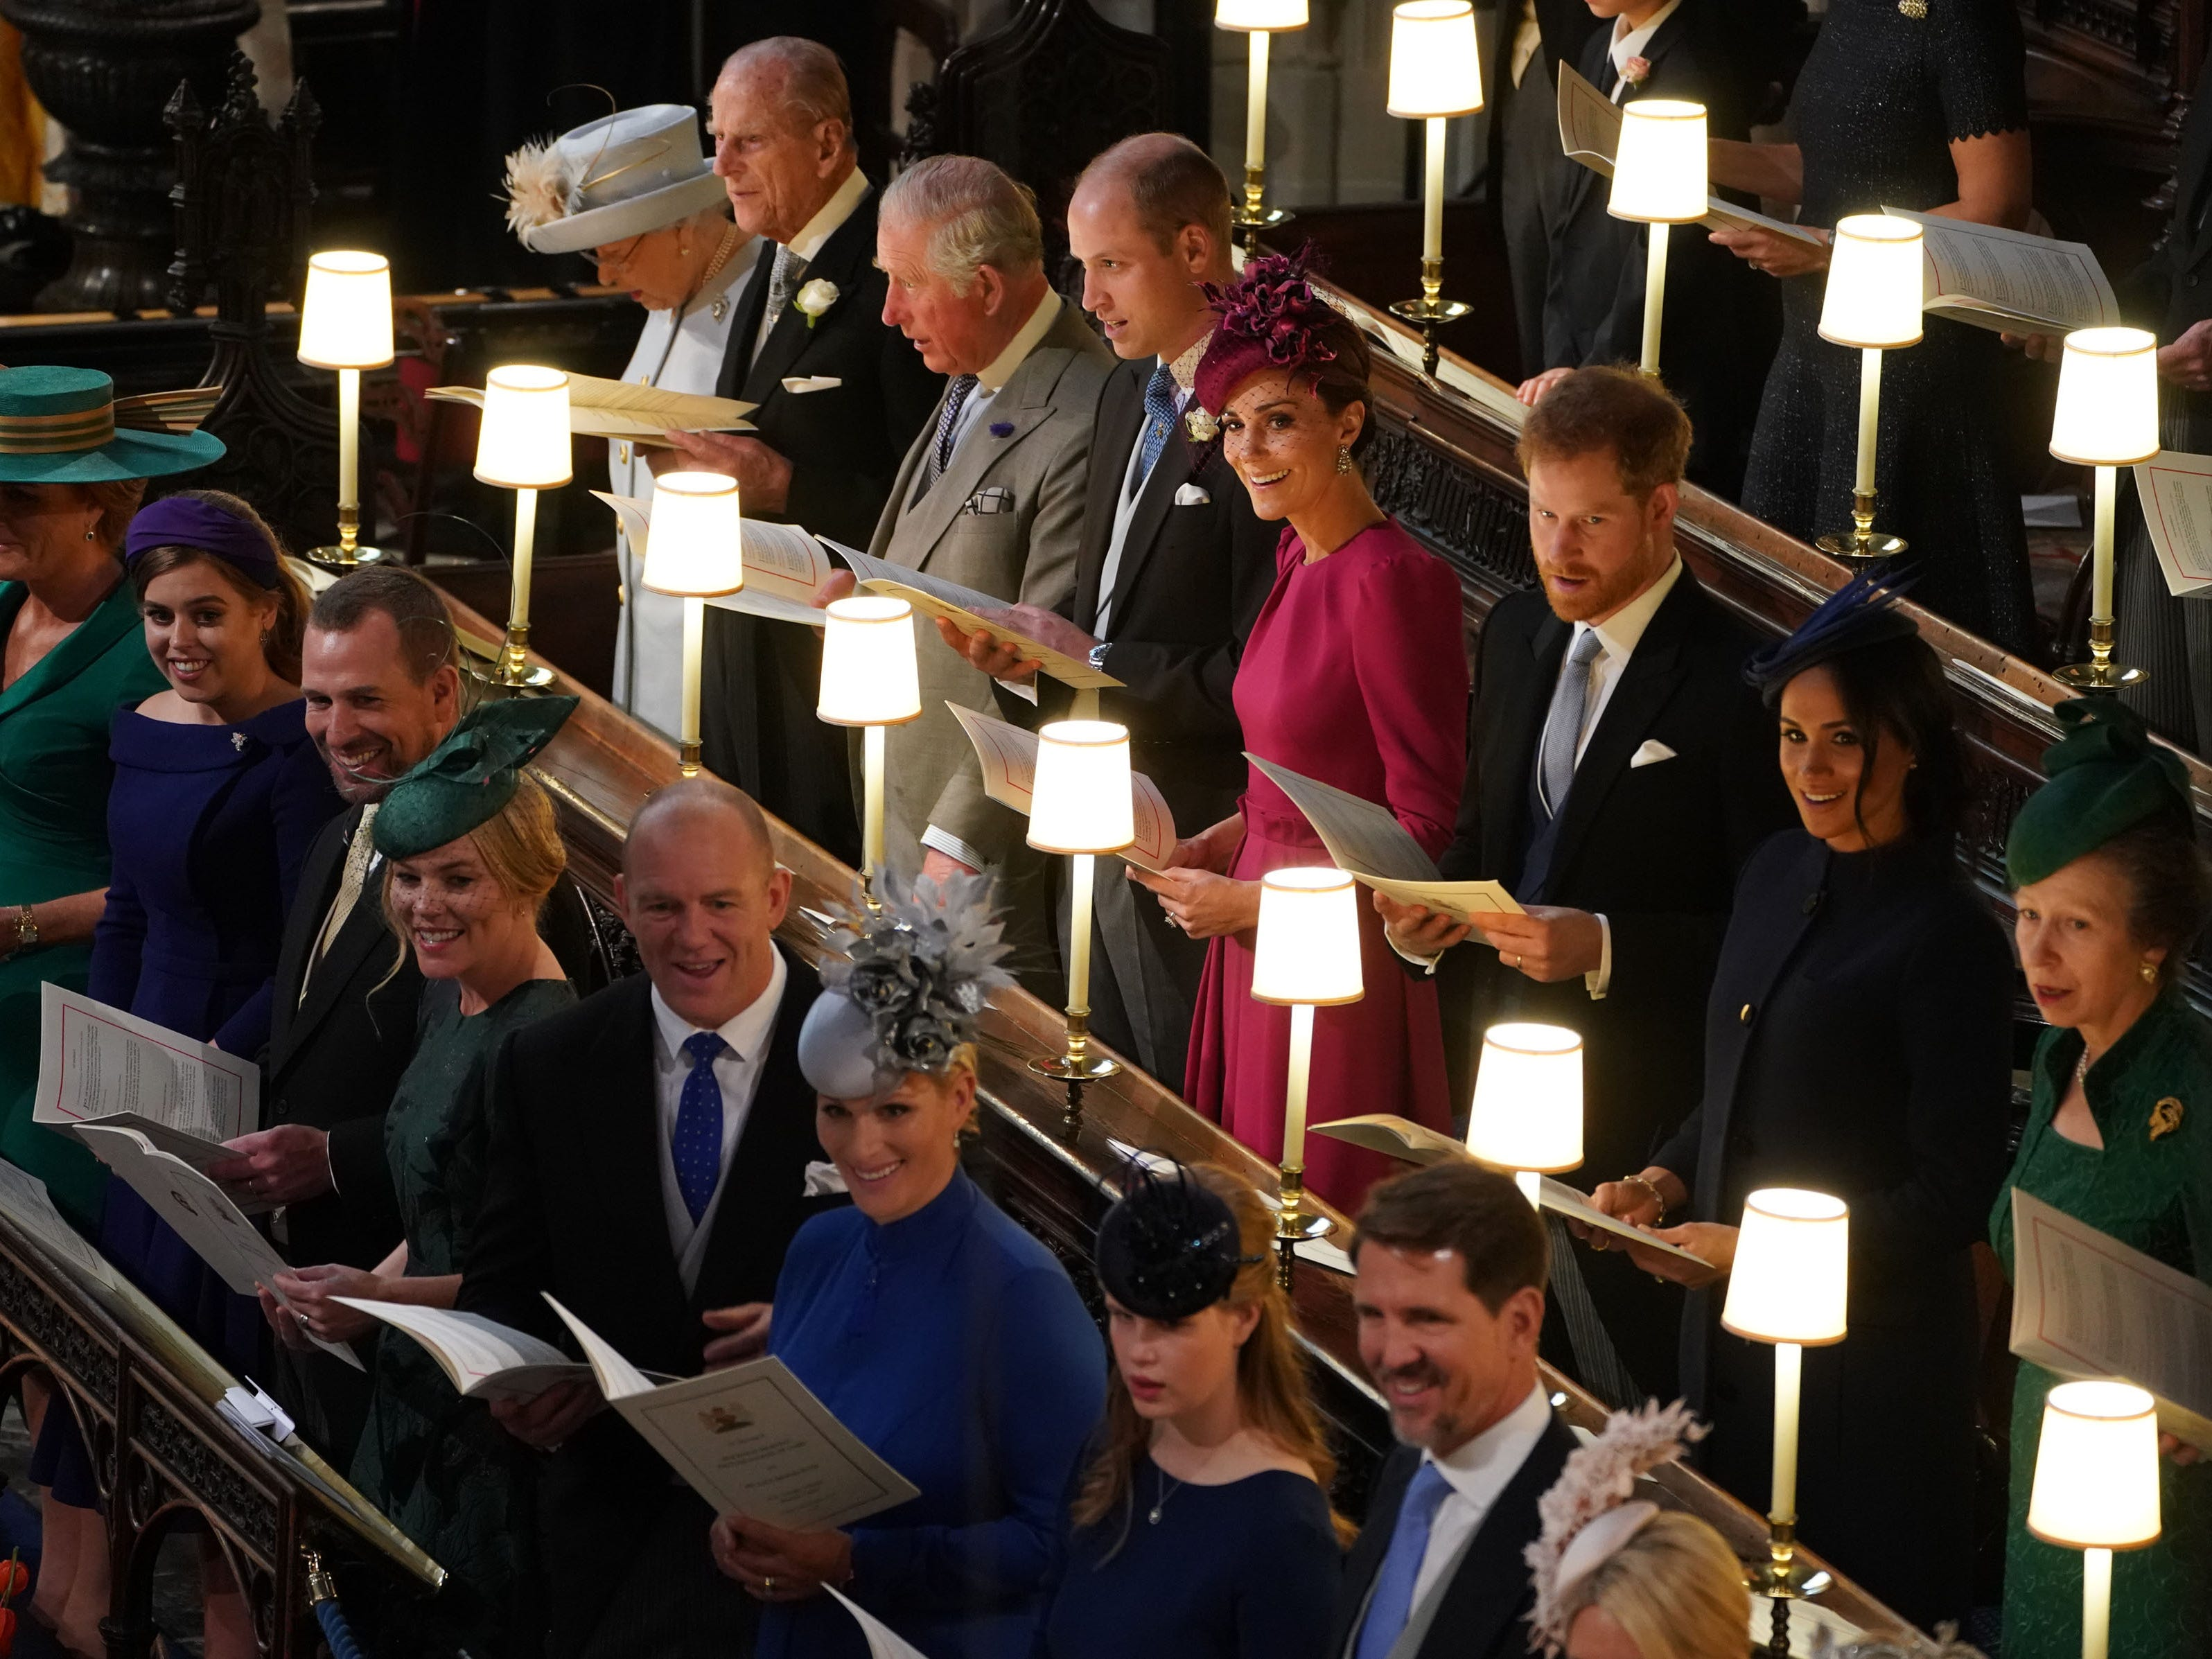 Back (L-R) Queen Elizabeth II, Prince Philip, Duke of Edinburgh, Prince Charles, Prince of Wales, Prince William, Duke of Cambridge, Catherine, Duchess of Cambridge, Prince Harry, Duke of Sussex, Meghan, Duchess of Sussex and Princess Anne, Princess Royal and (front L-R) Sarah Ferguson Princess Beatrice of York, Peter Phillips, Autumn Phillips, Mike Tindall, Zara Tindall  Lady Louise Windsor and Crown Prince Pavlos of Greece.